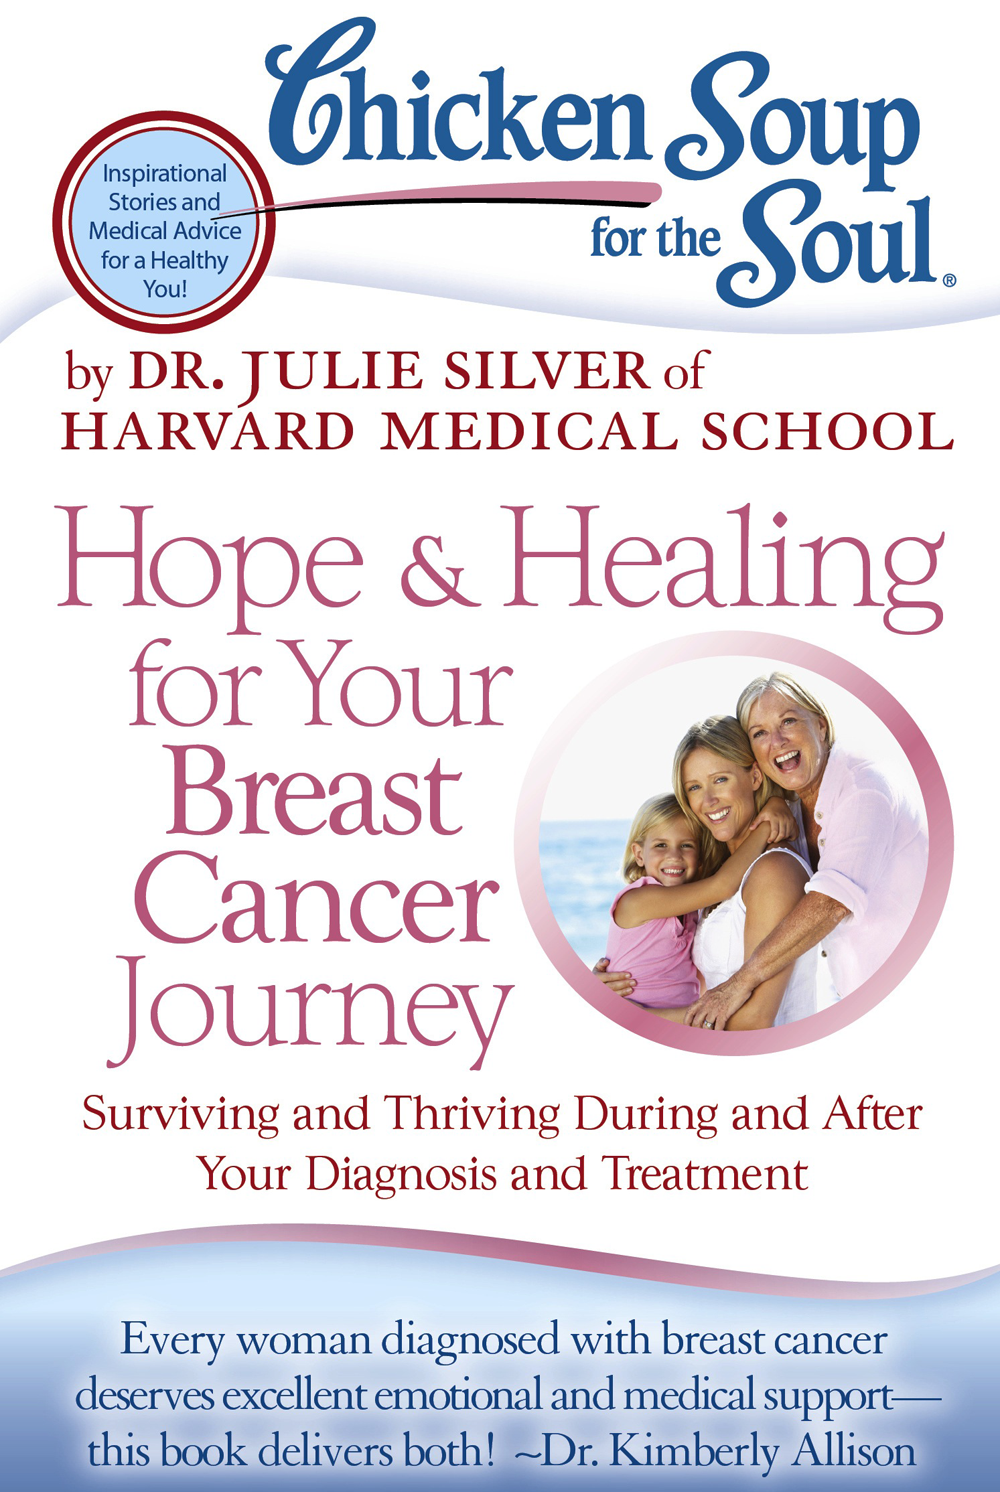 Chicken Soup For the Soul-Hope & Healing For Your Breast Cancer Journey book cover